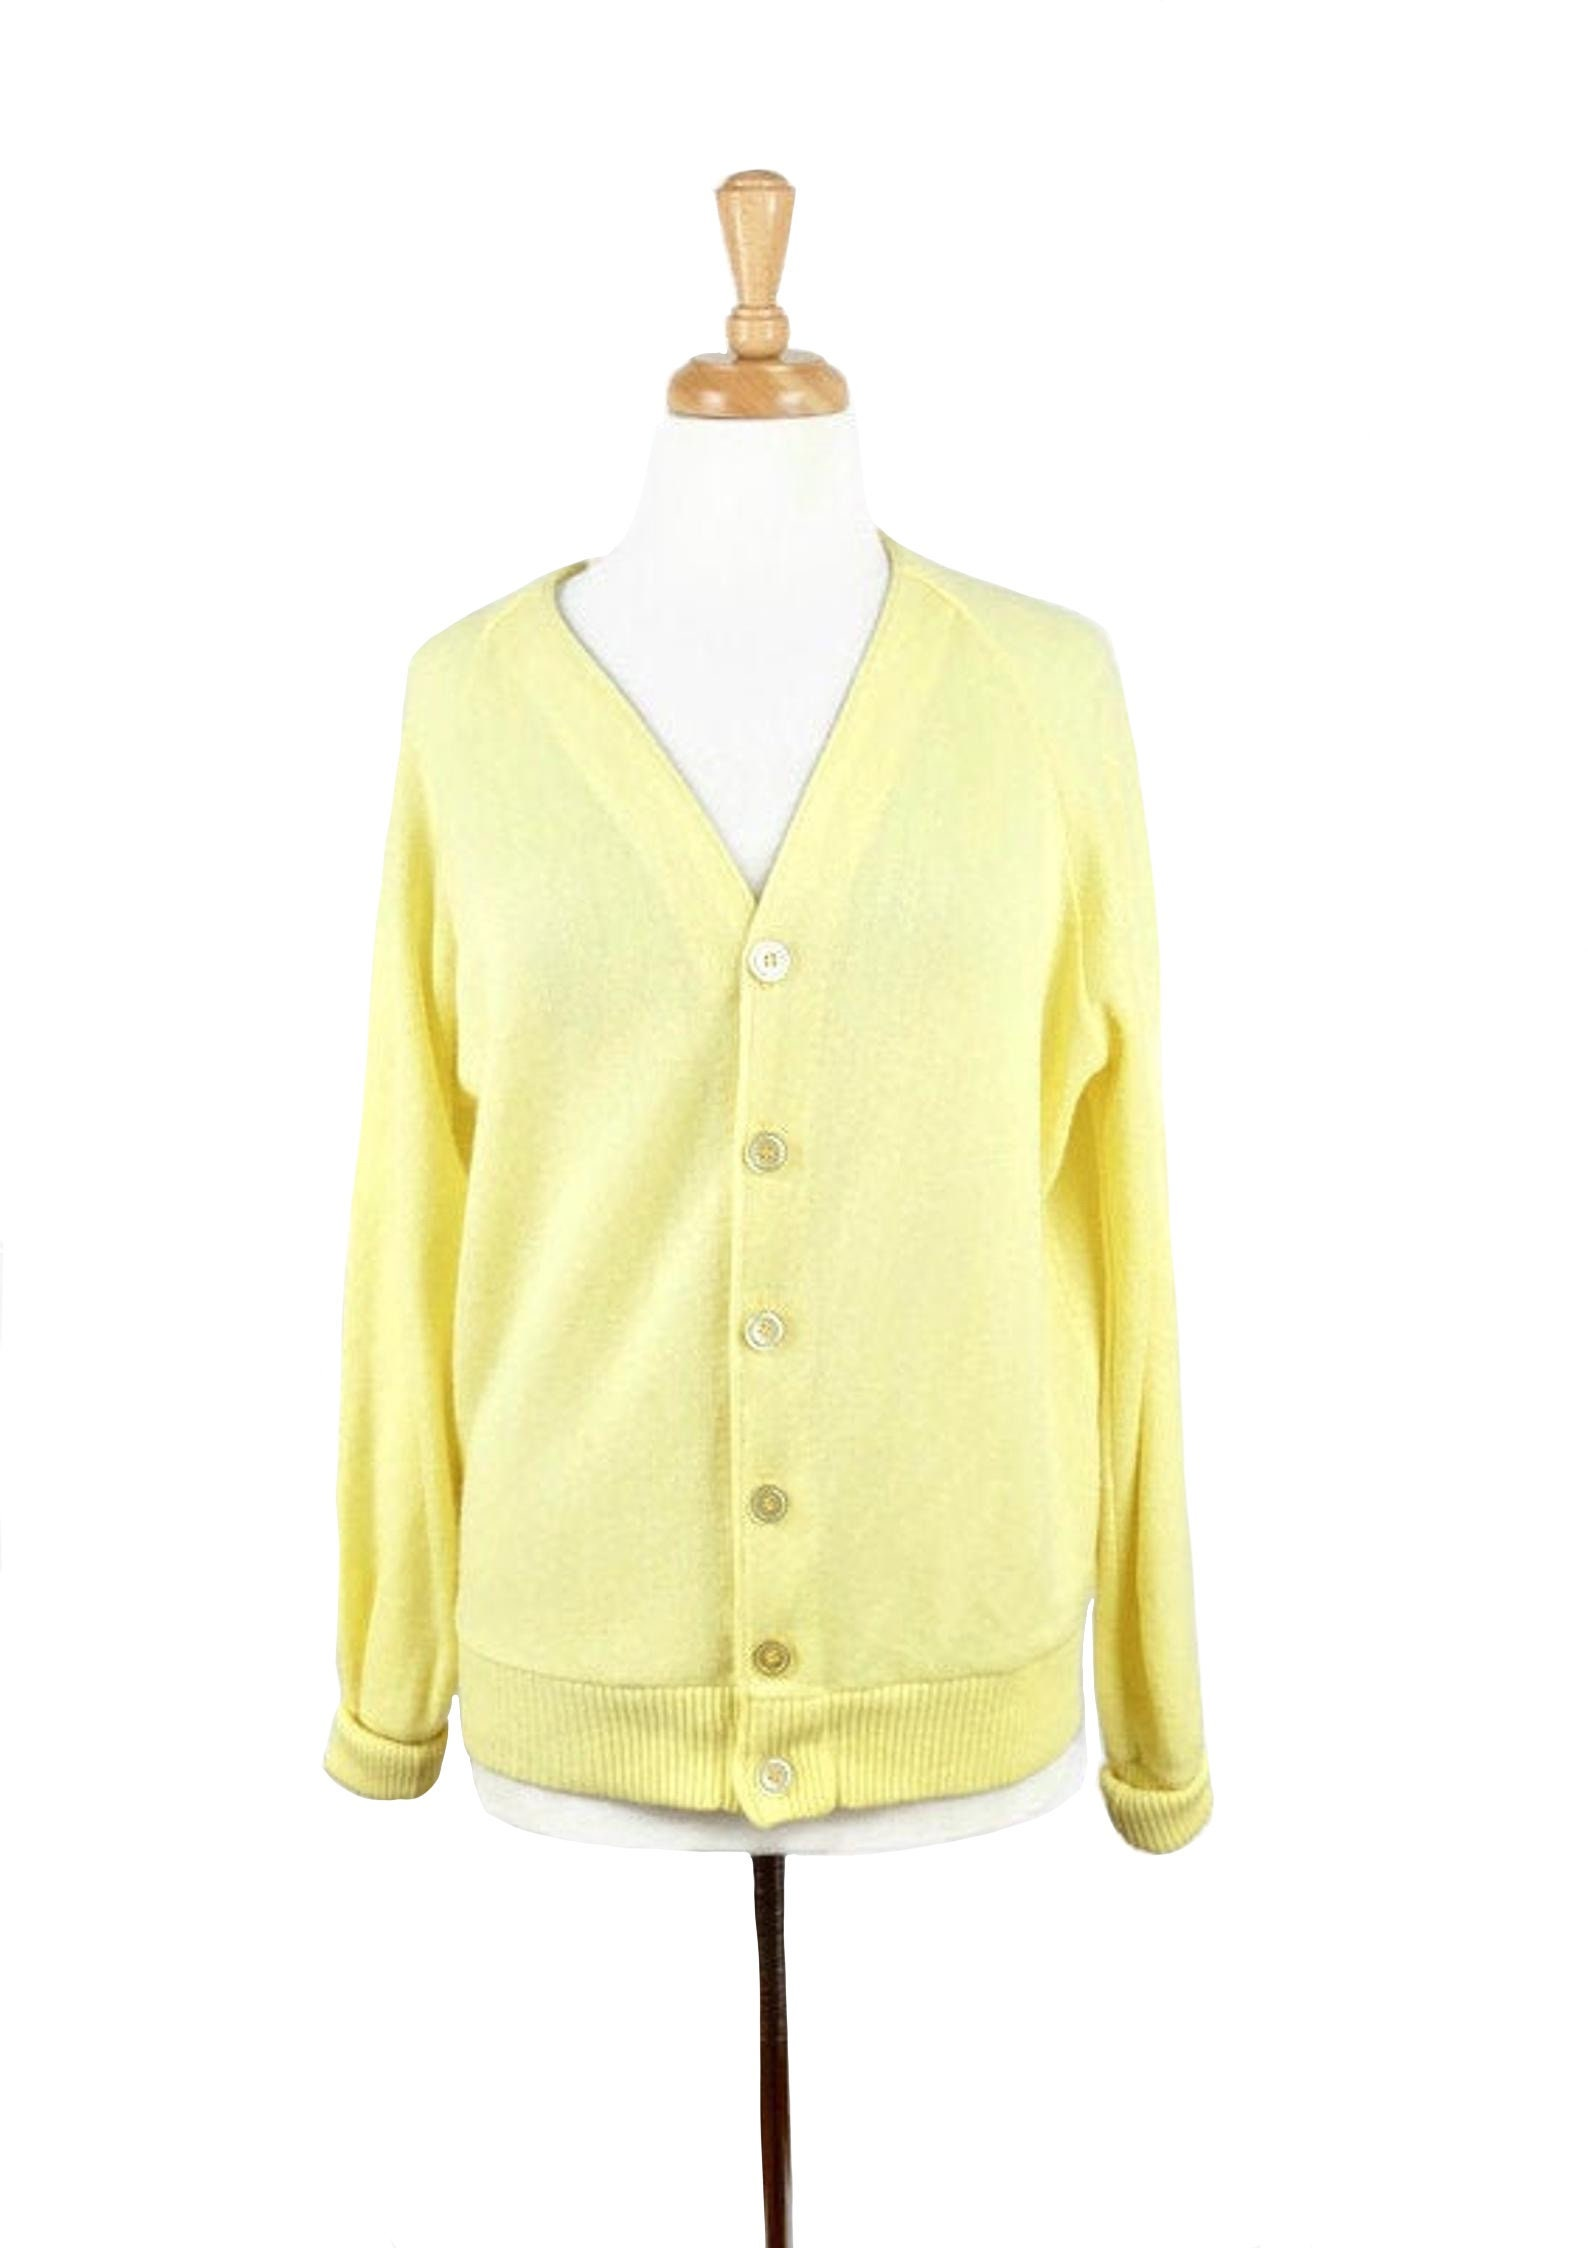 1950s Men's Ties, Bow Ties – Vintage, Skinny, Knit Vintage 1950s Mod Preppy Pastel Yellow Knit Button Down V-Neck Sweater Cardigan $37.40 AT vintagedancer.com